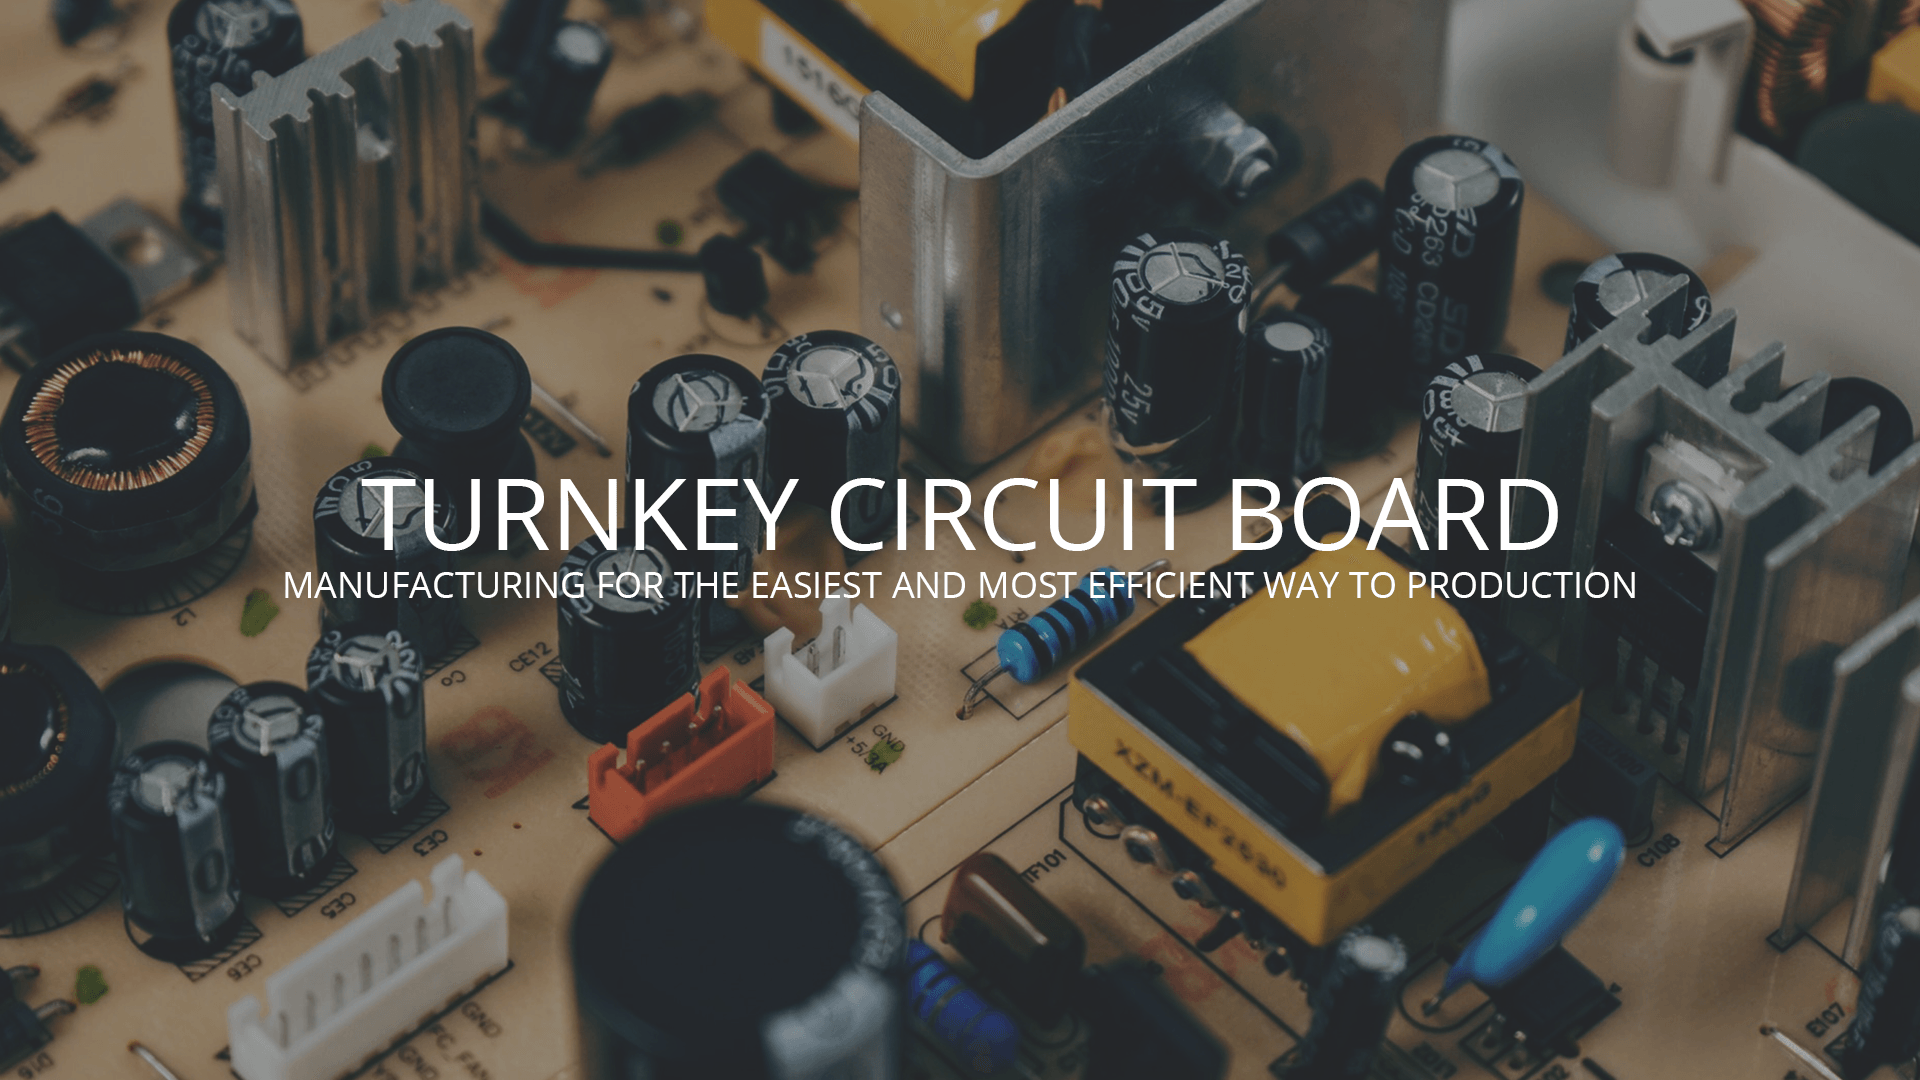 Turnkey Circuit Board Manufacturing